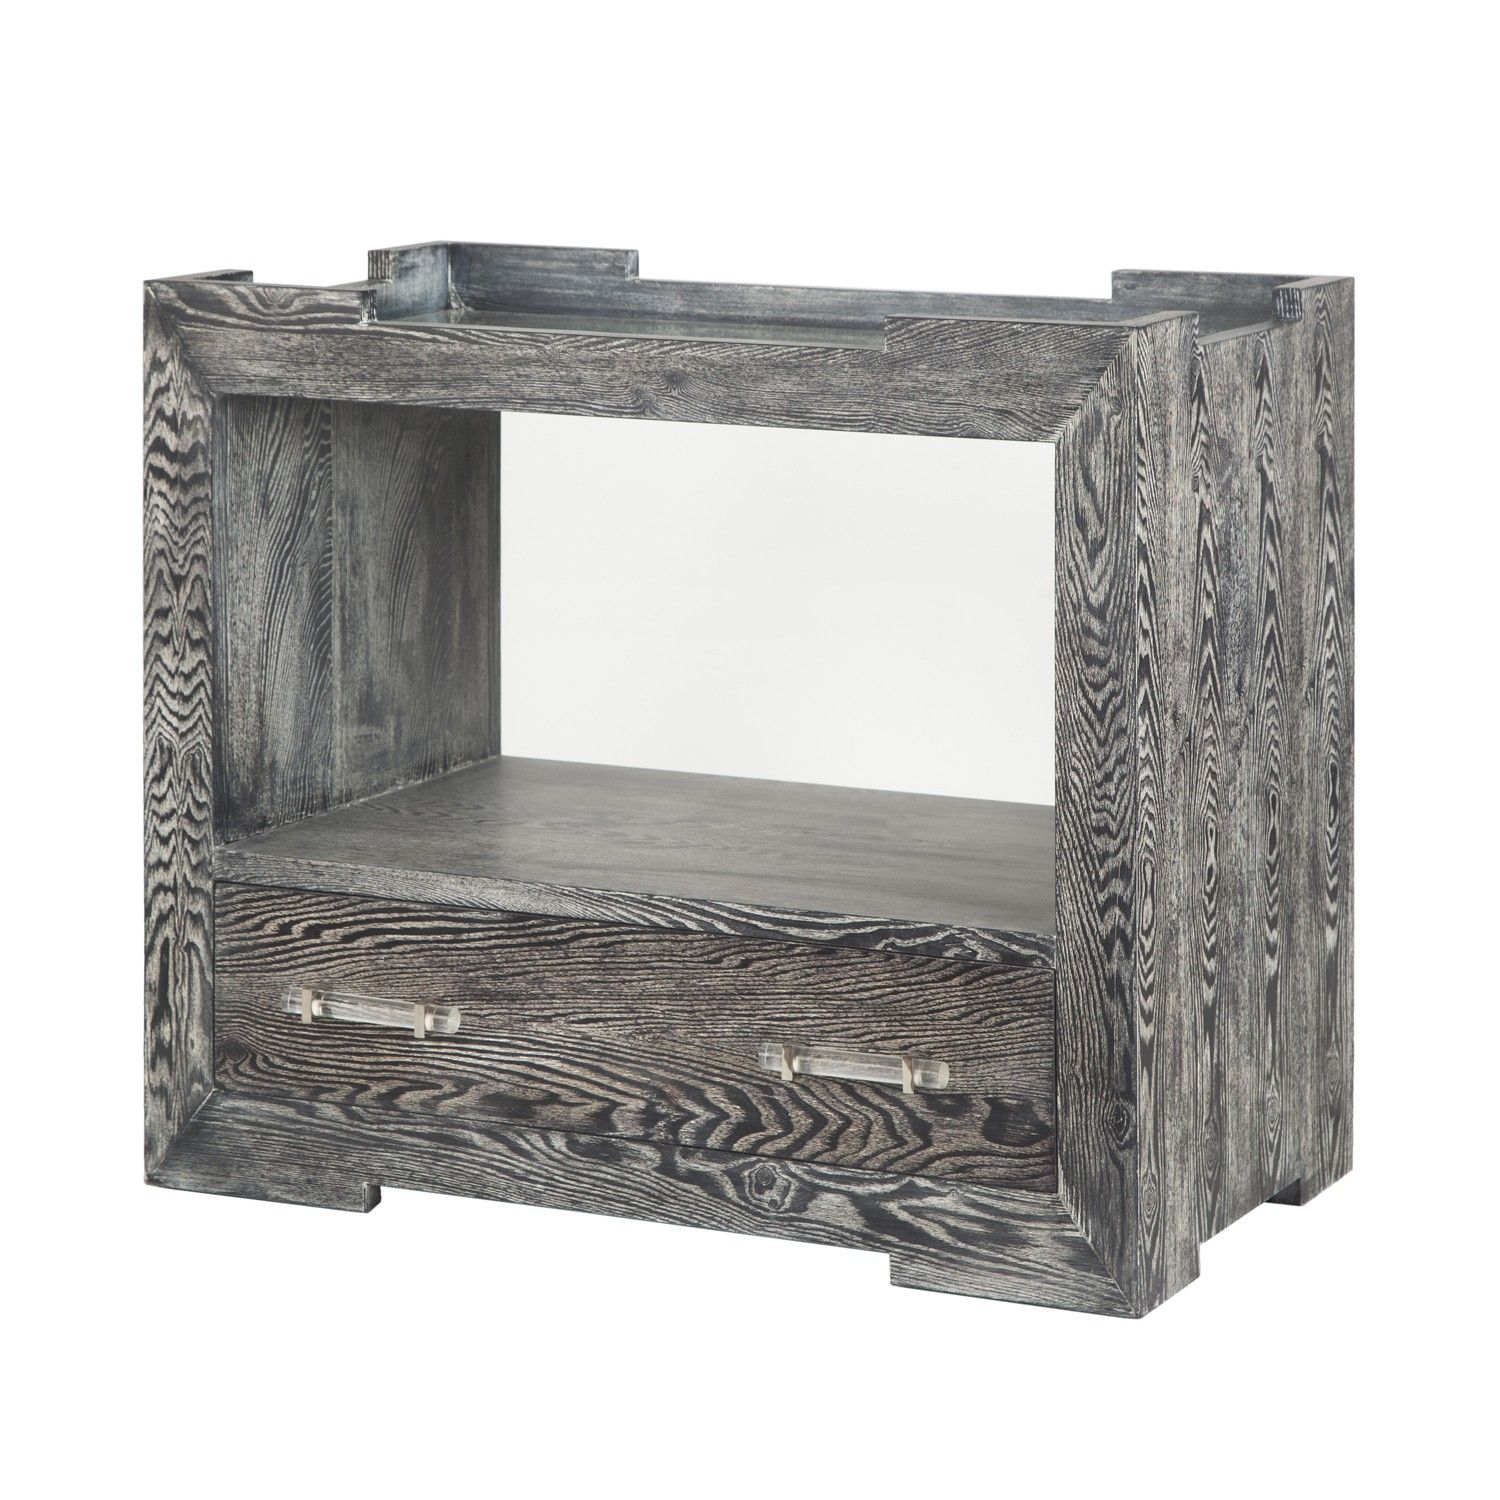 Monica bco tray top one drawer side table in black